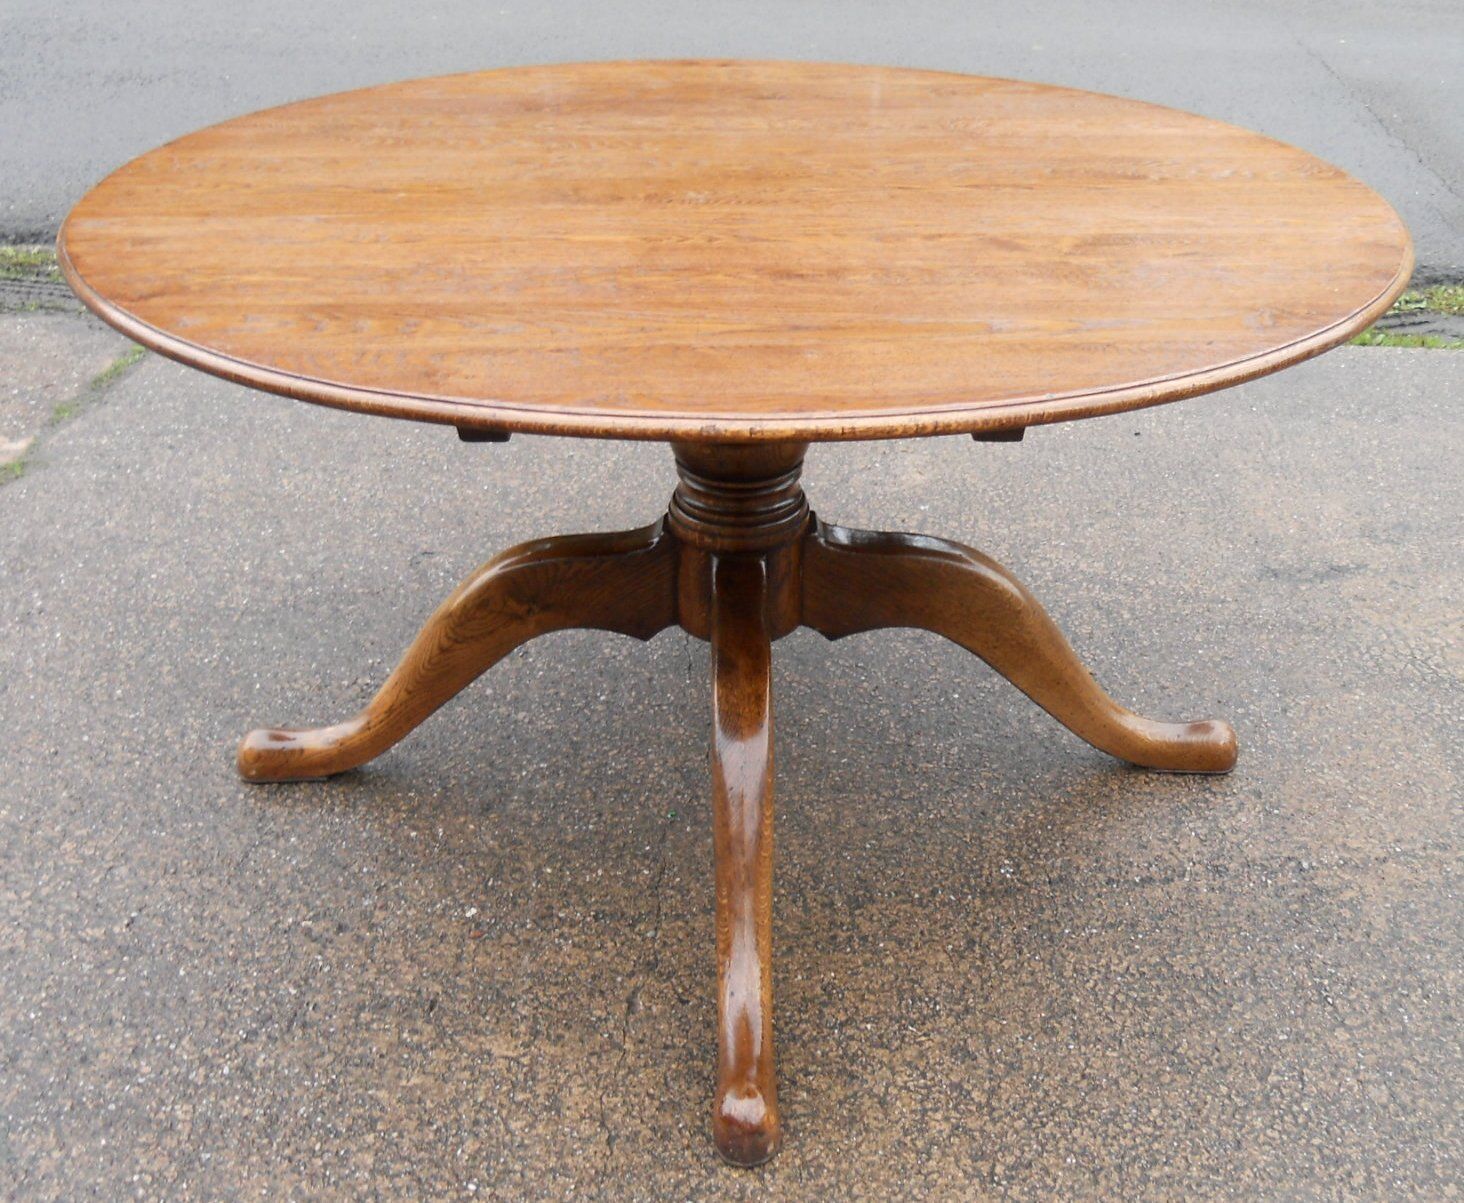 Sold – Large Round Oak Pedestal Dining Table To Seat Eight Pertaining To Recent Kirt Pedestal Dining Tables (View 11 of 15)